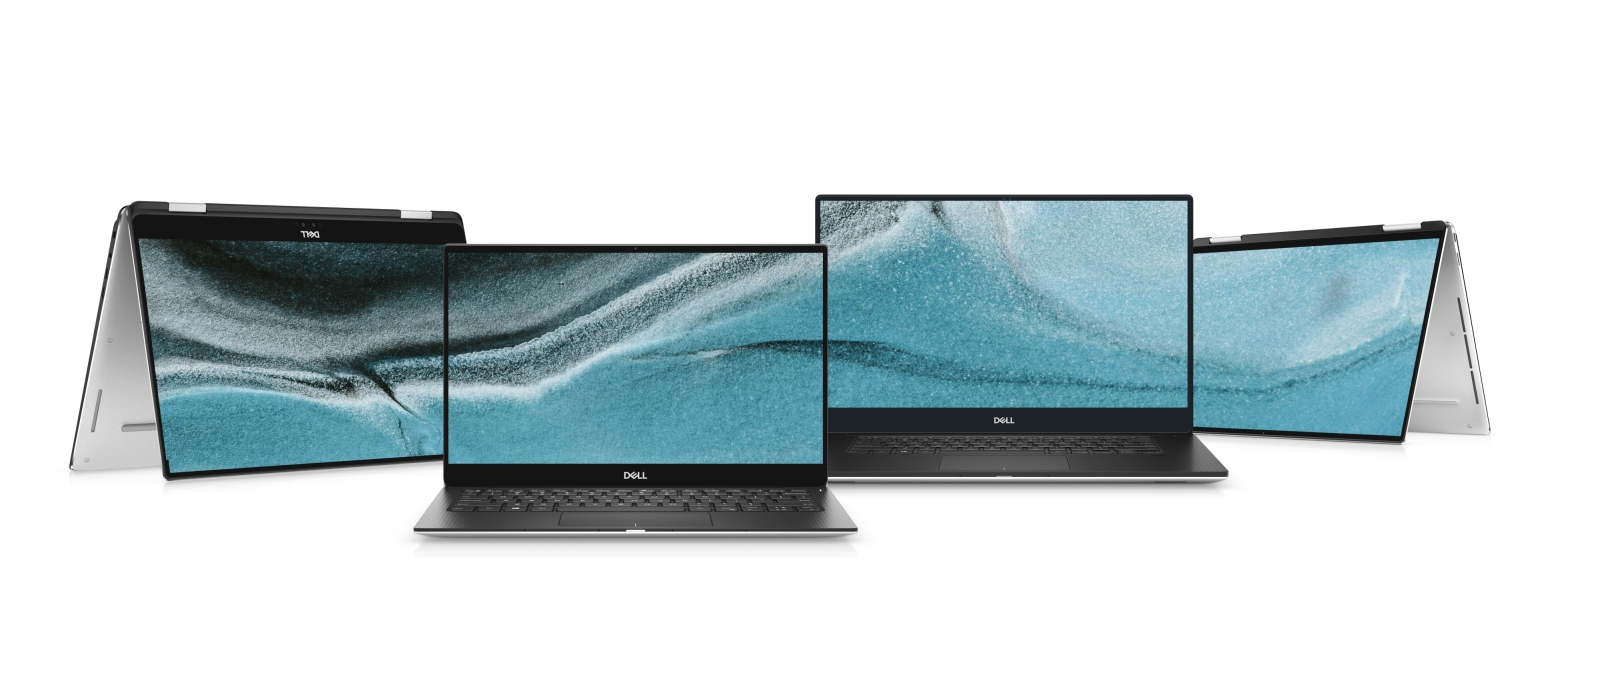 XPS 13 and 15 9000 Non-Touch and Touch Notebooks